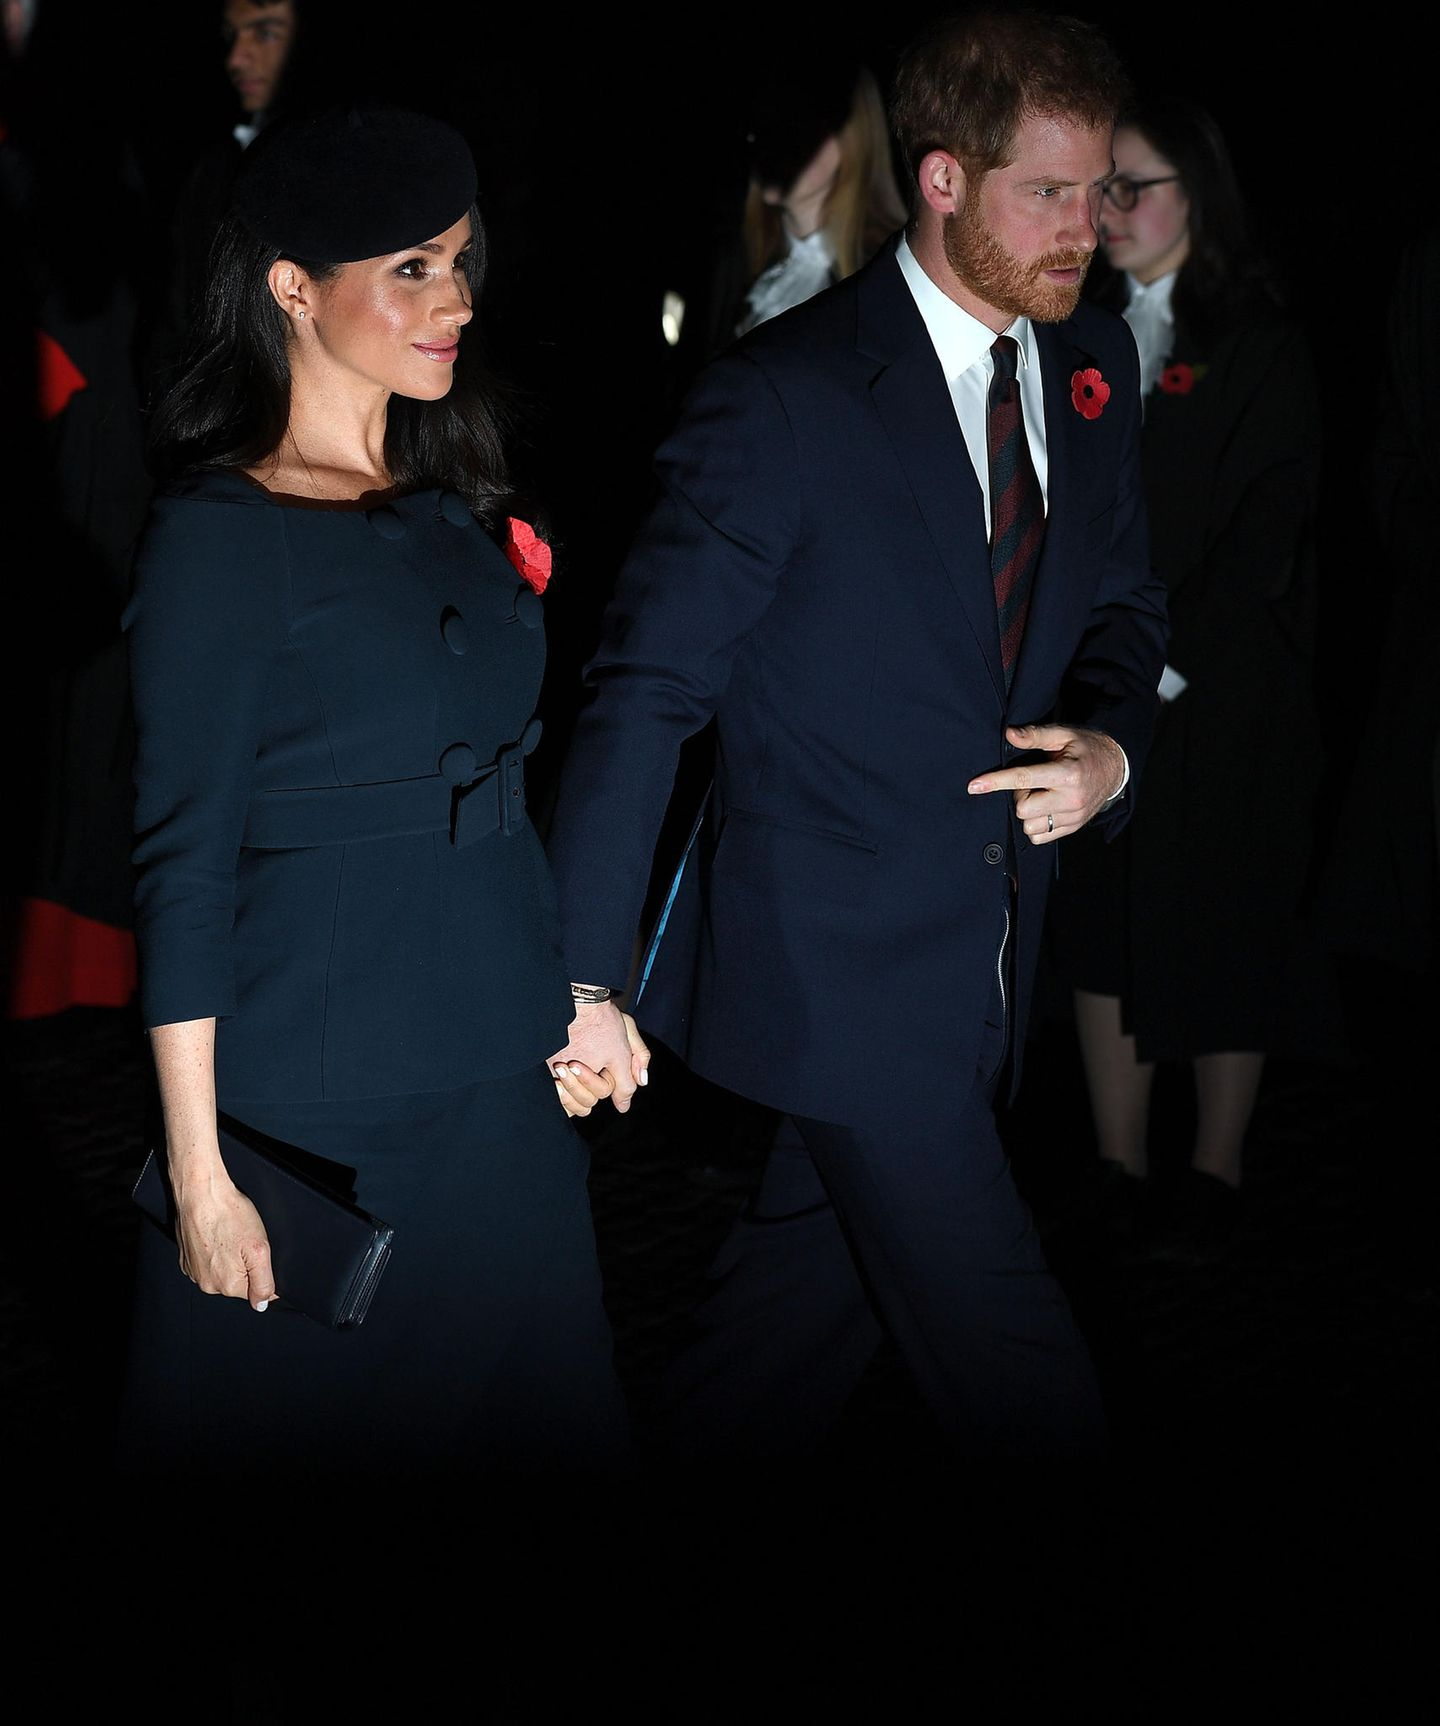 Herzogin Meghan und Prinz Harry am 11. November 2018 in London